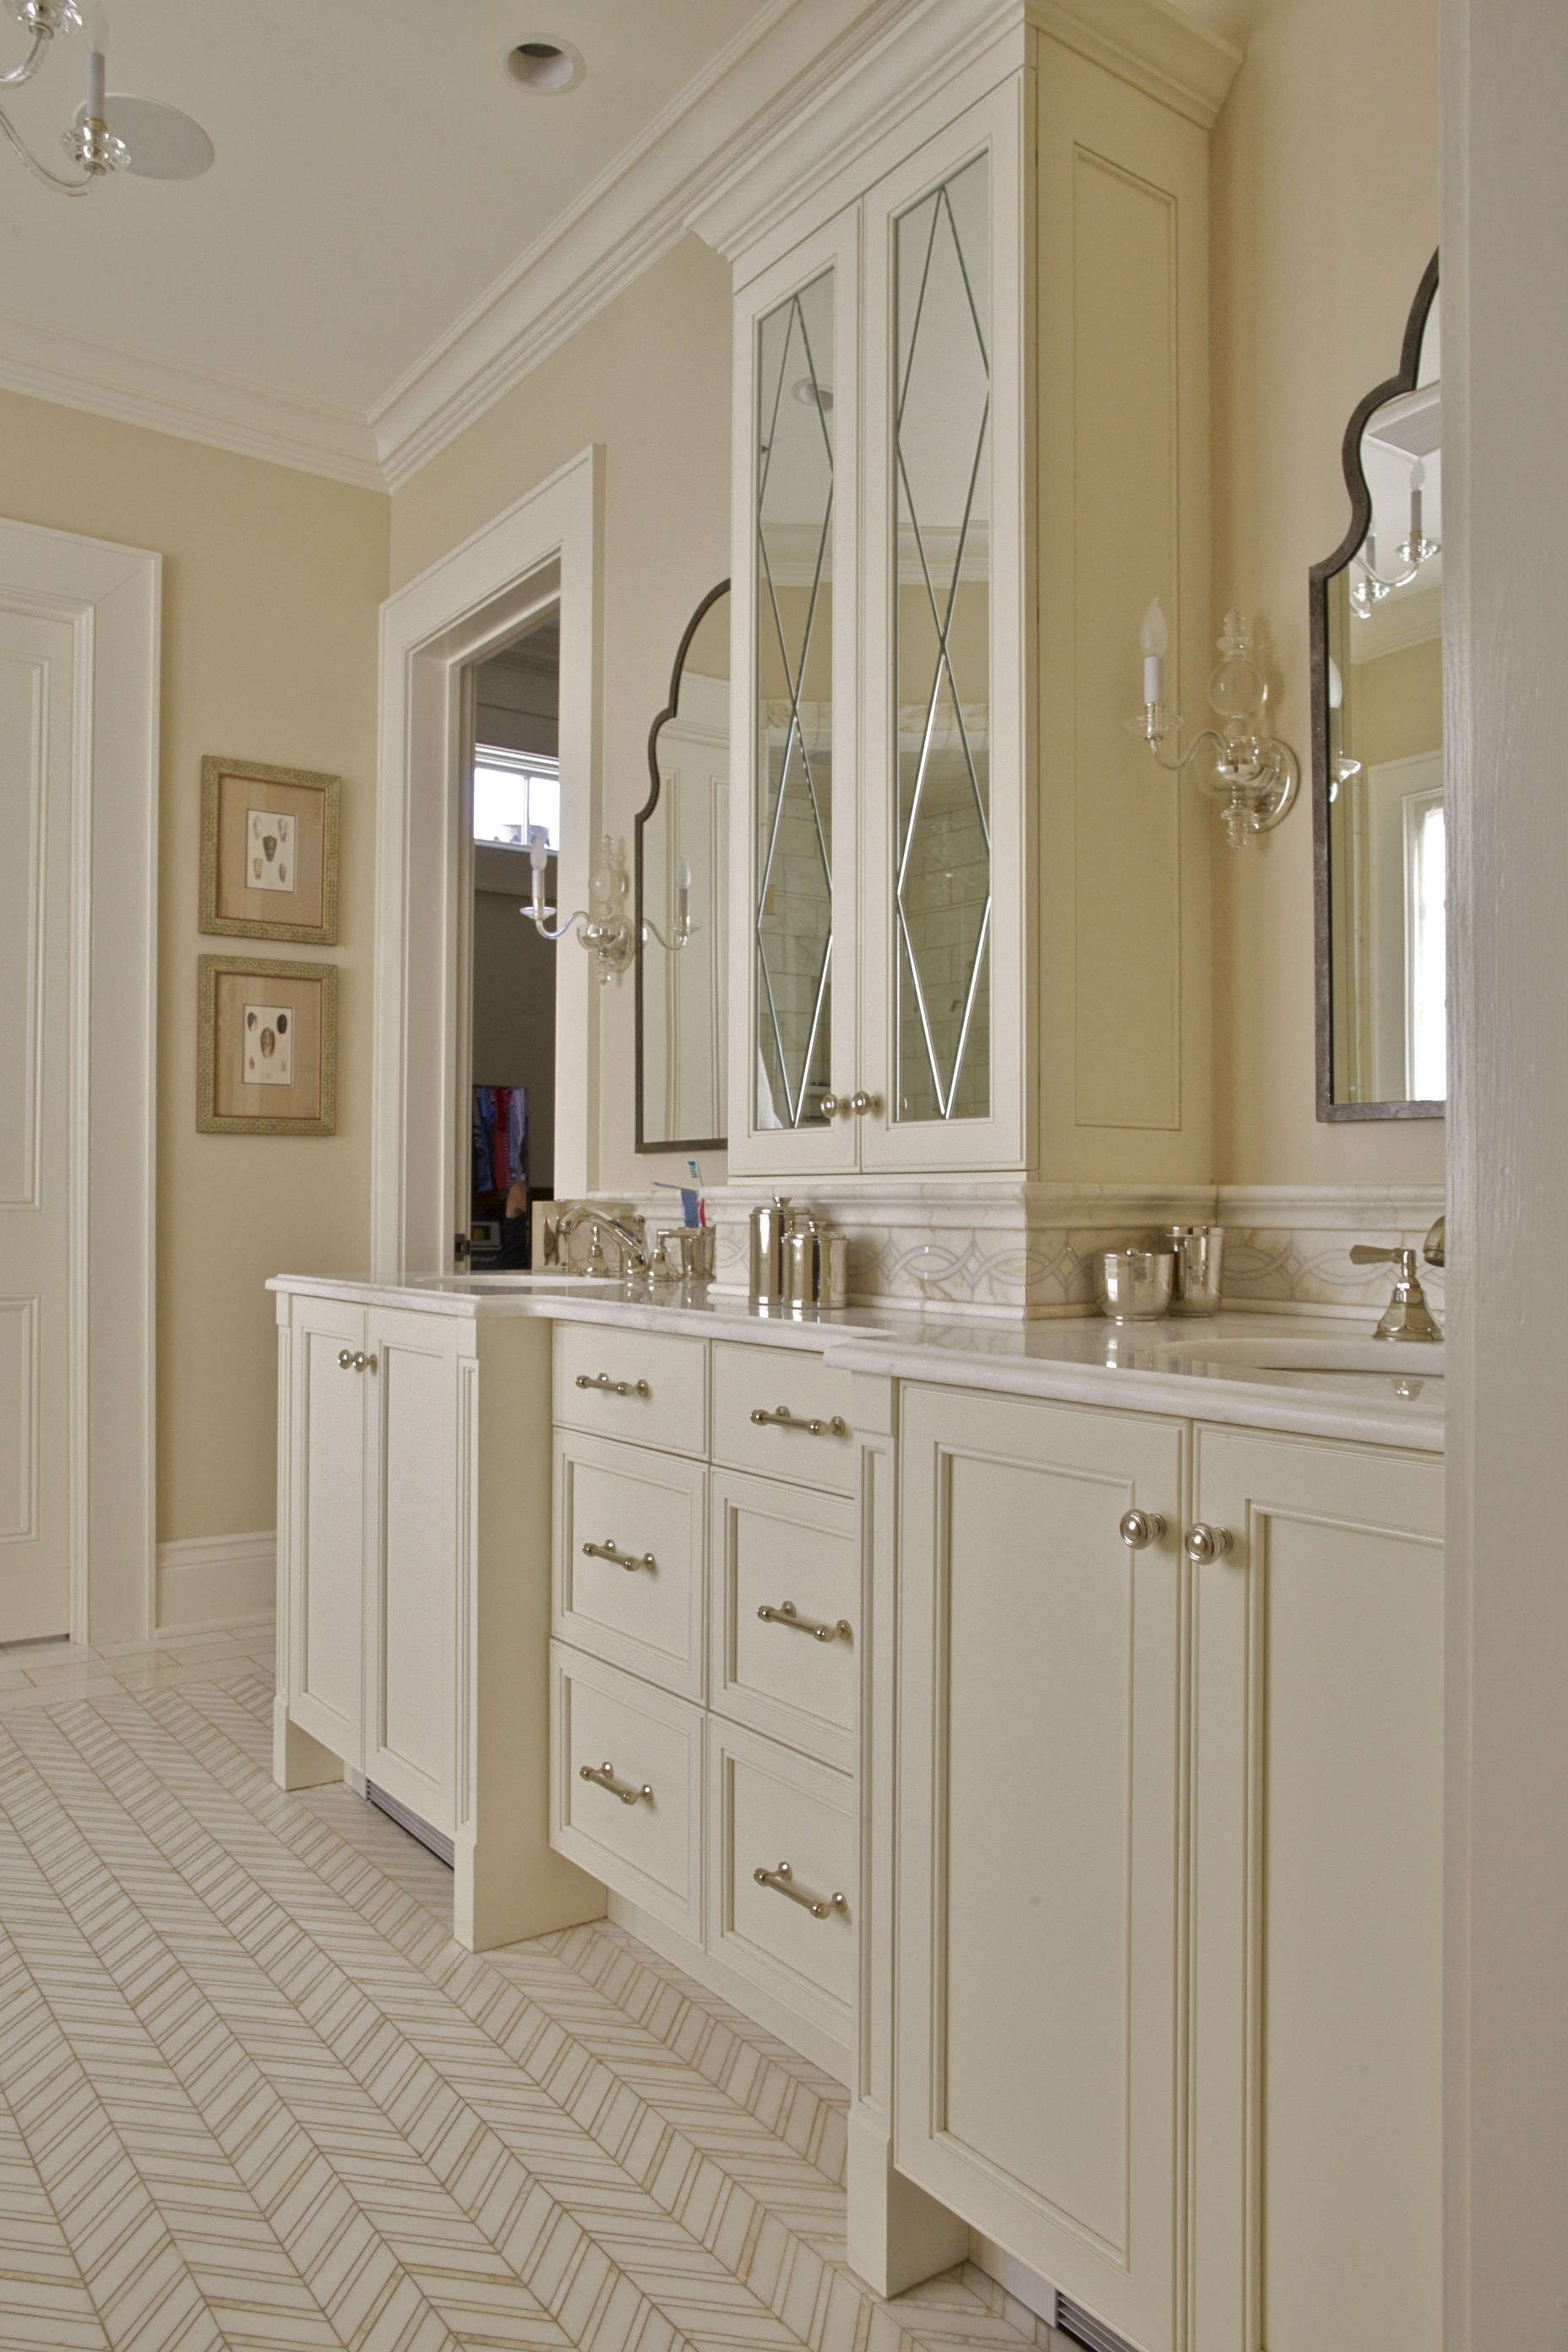 of built in abwfct vanity contemporary for inside elegant vanities new corner intended cabinets bathroom cabinet ege custom